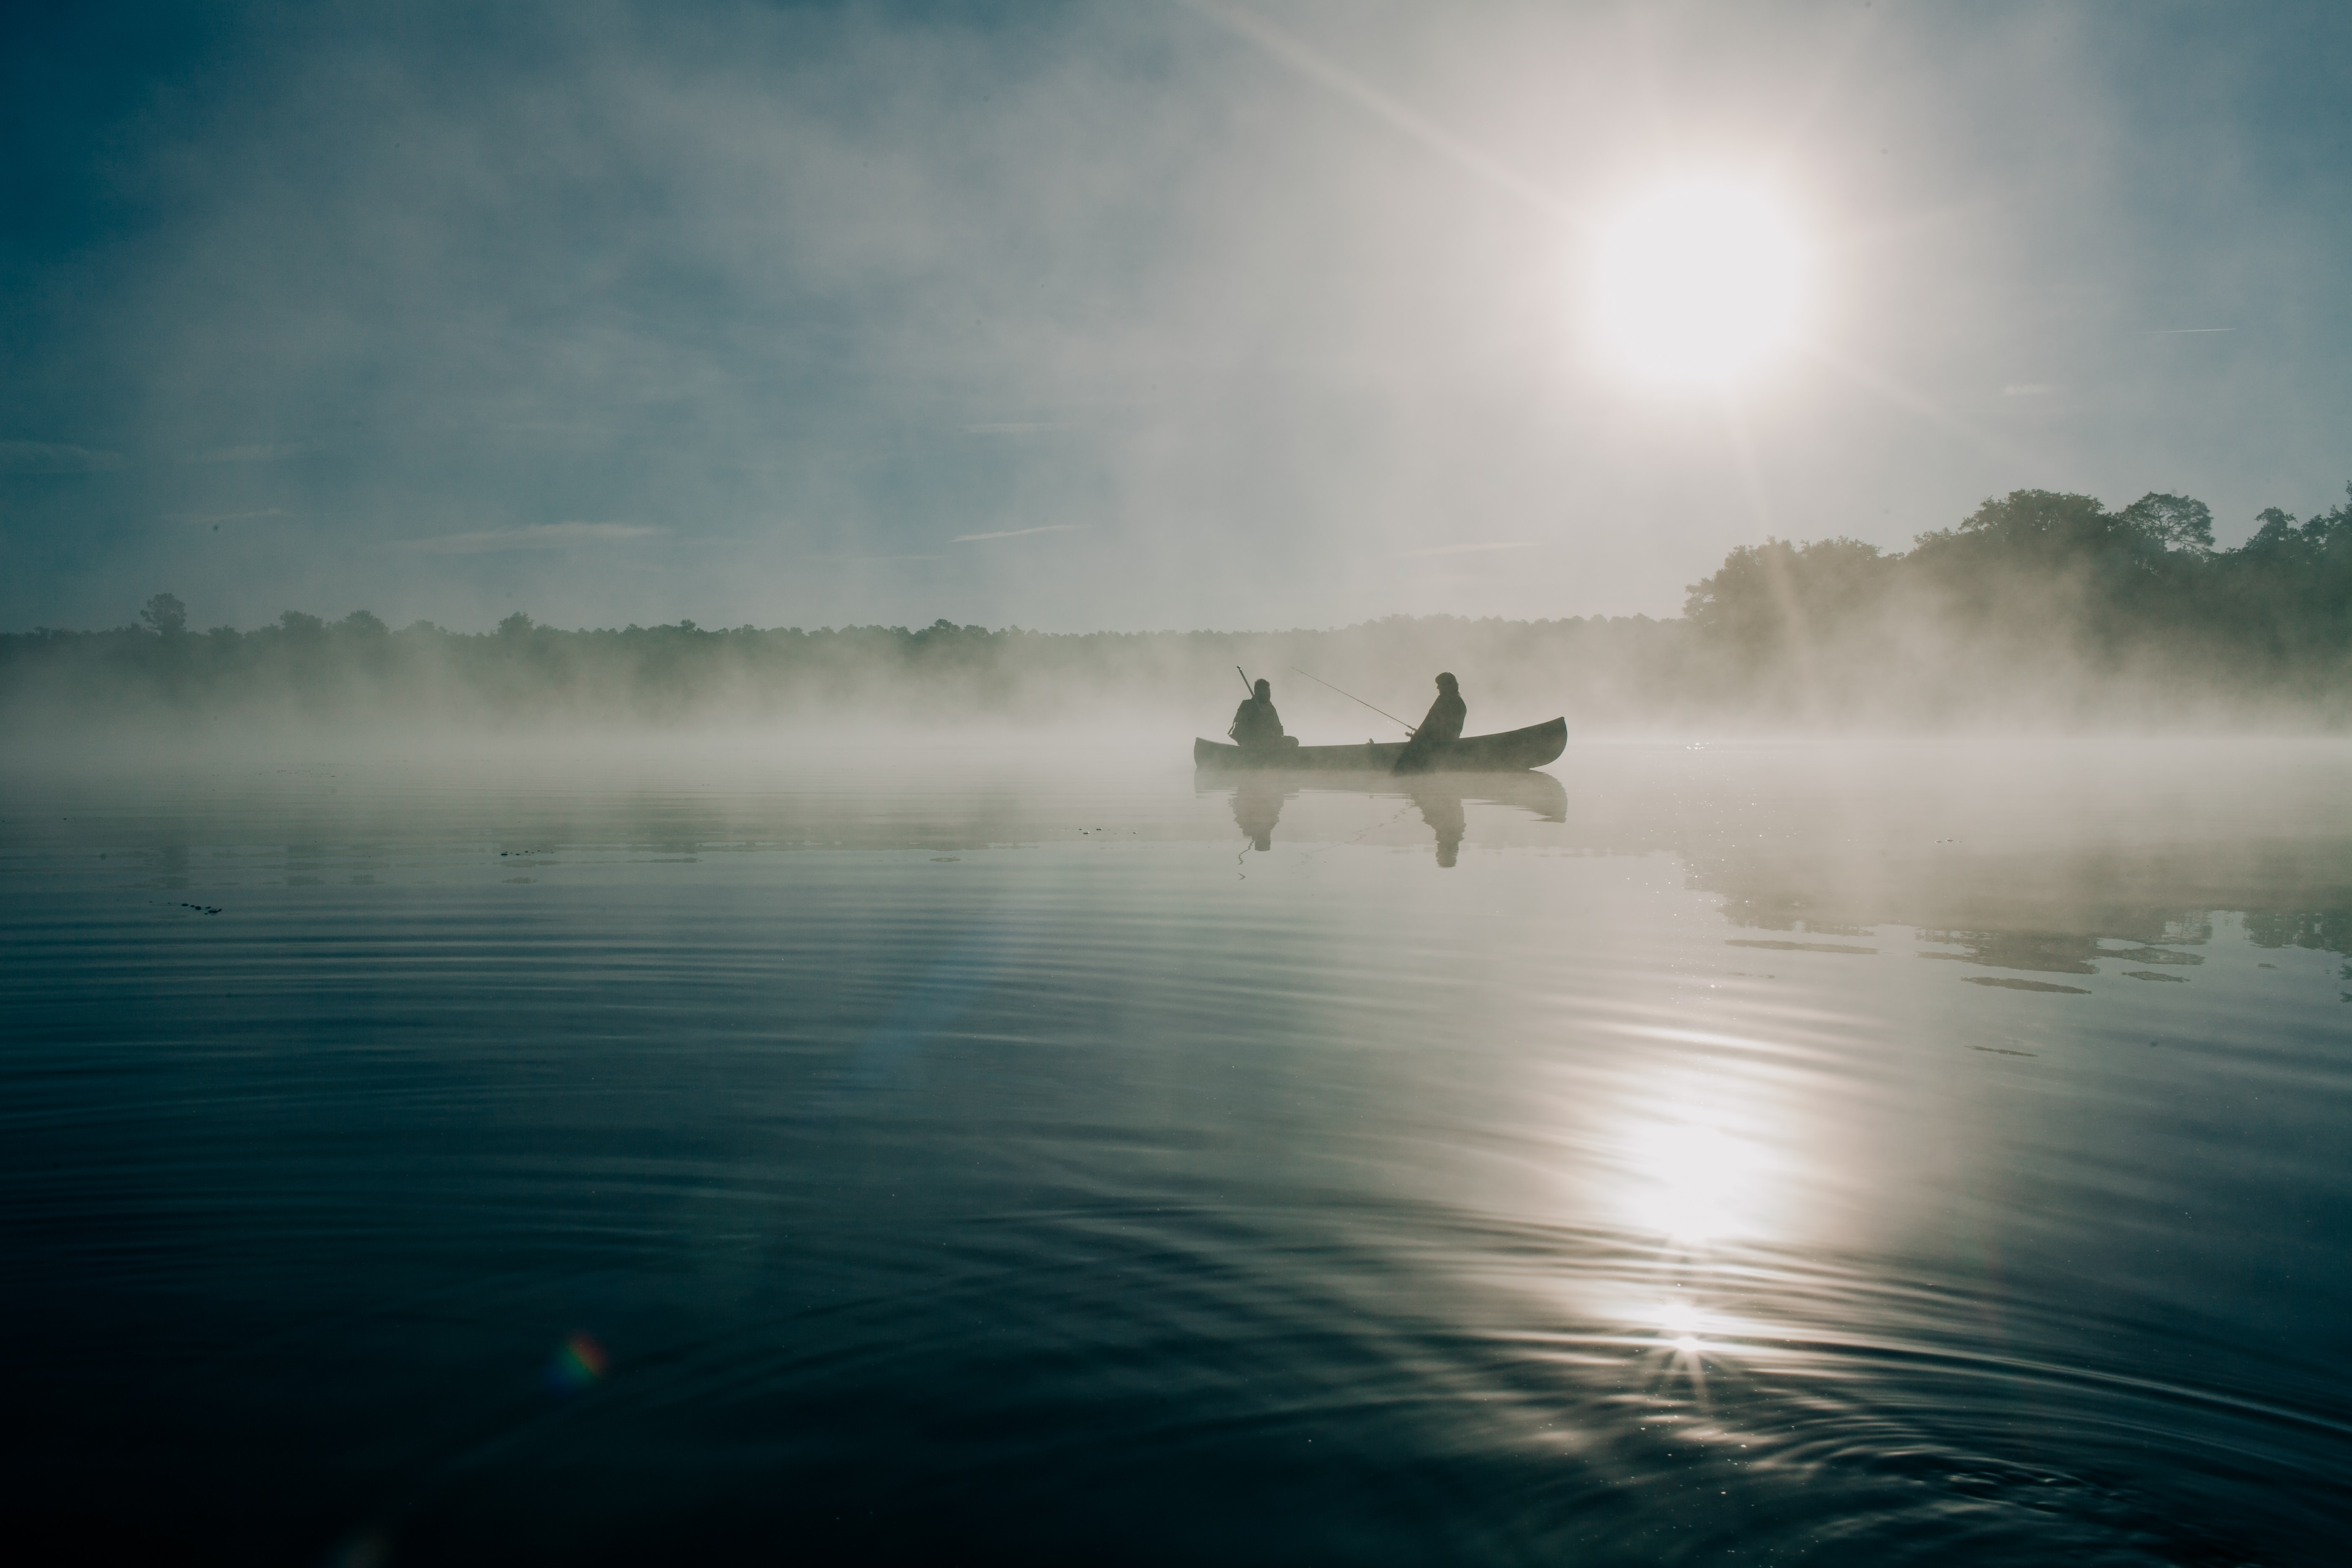 two person in boat on body of water during daytime